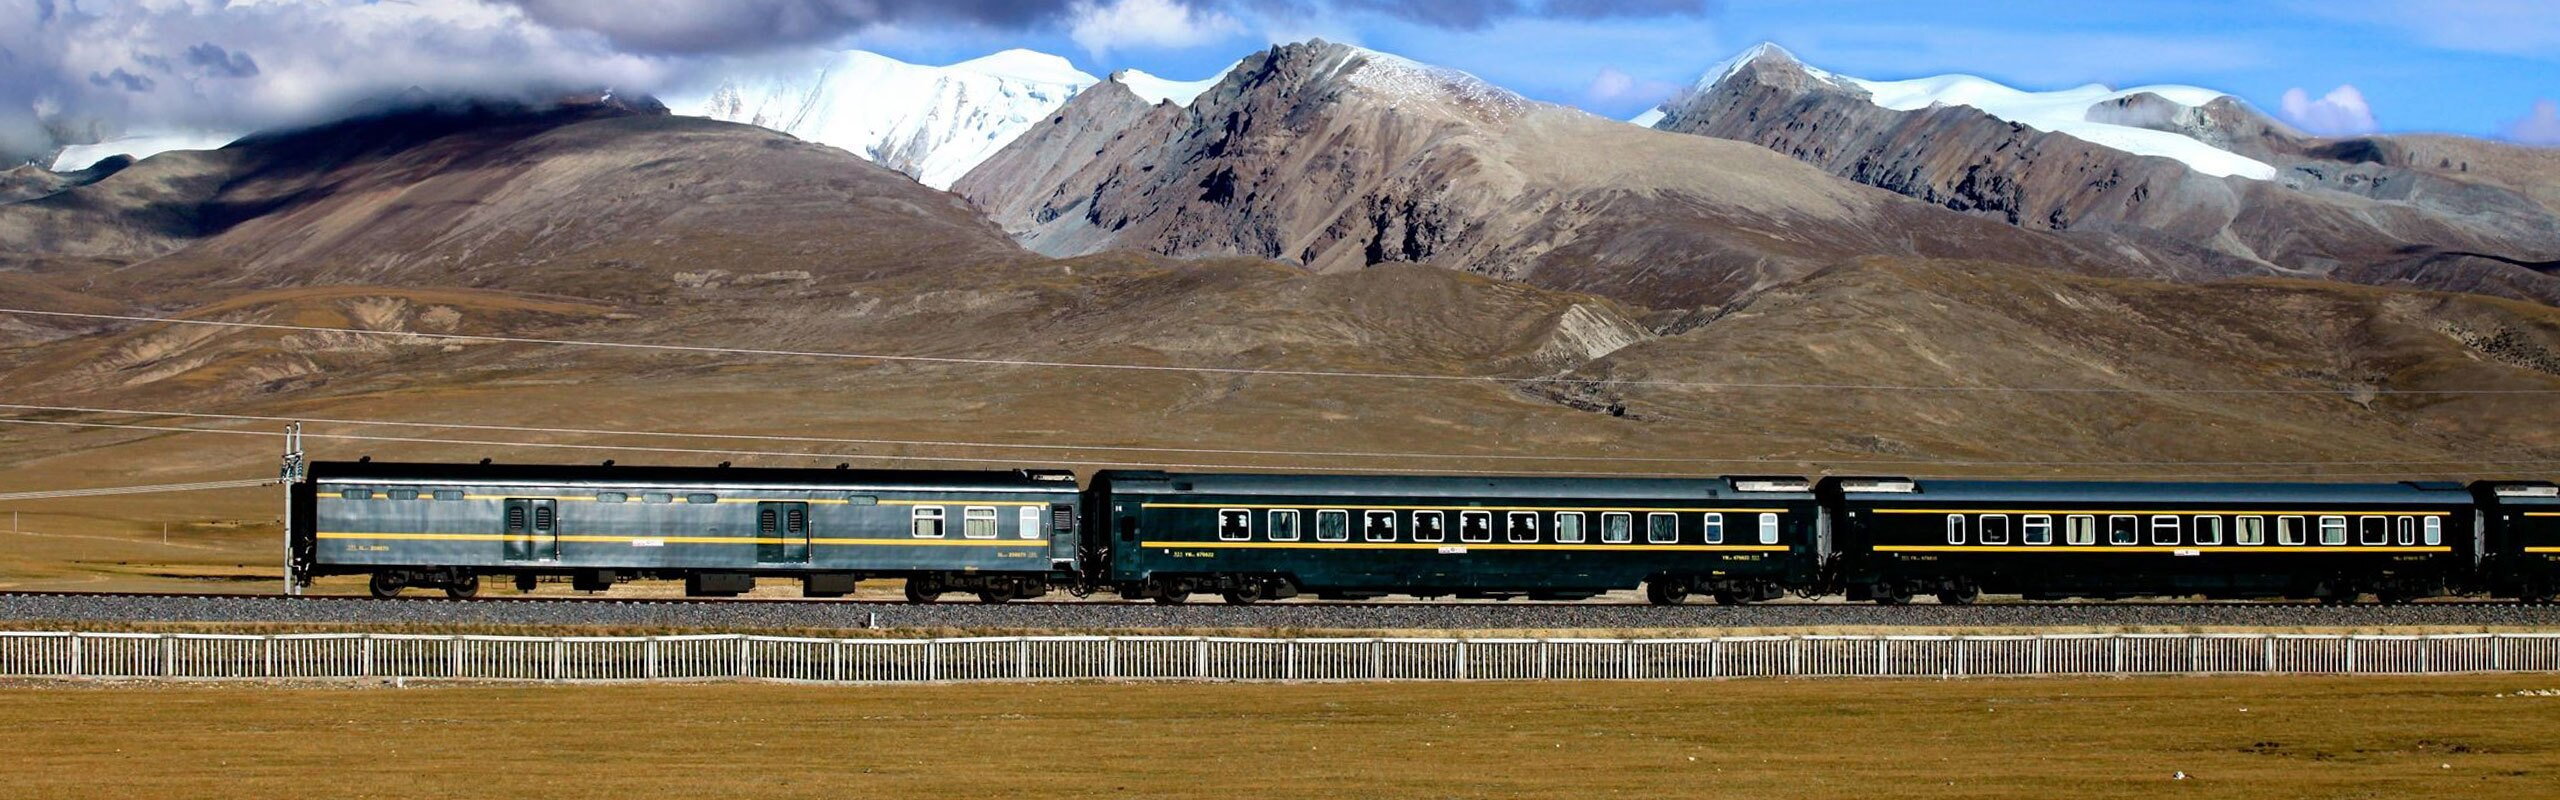 7-Day Tibet Tour by Train from Xining